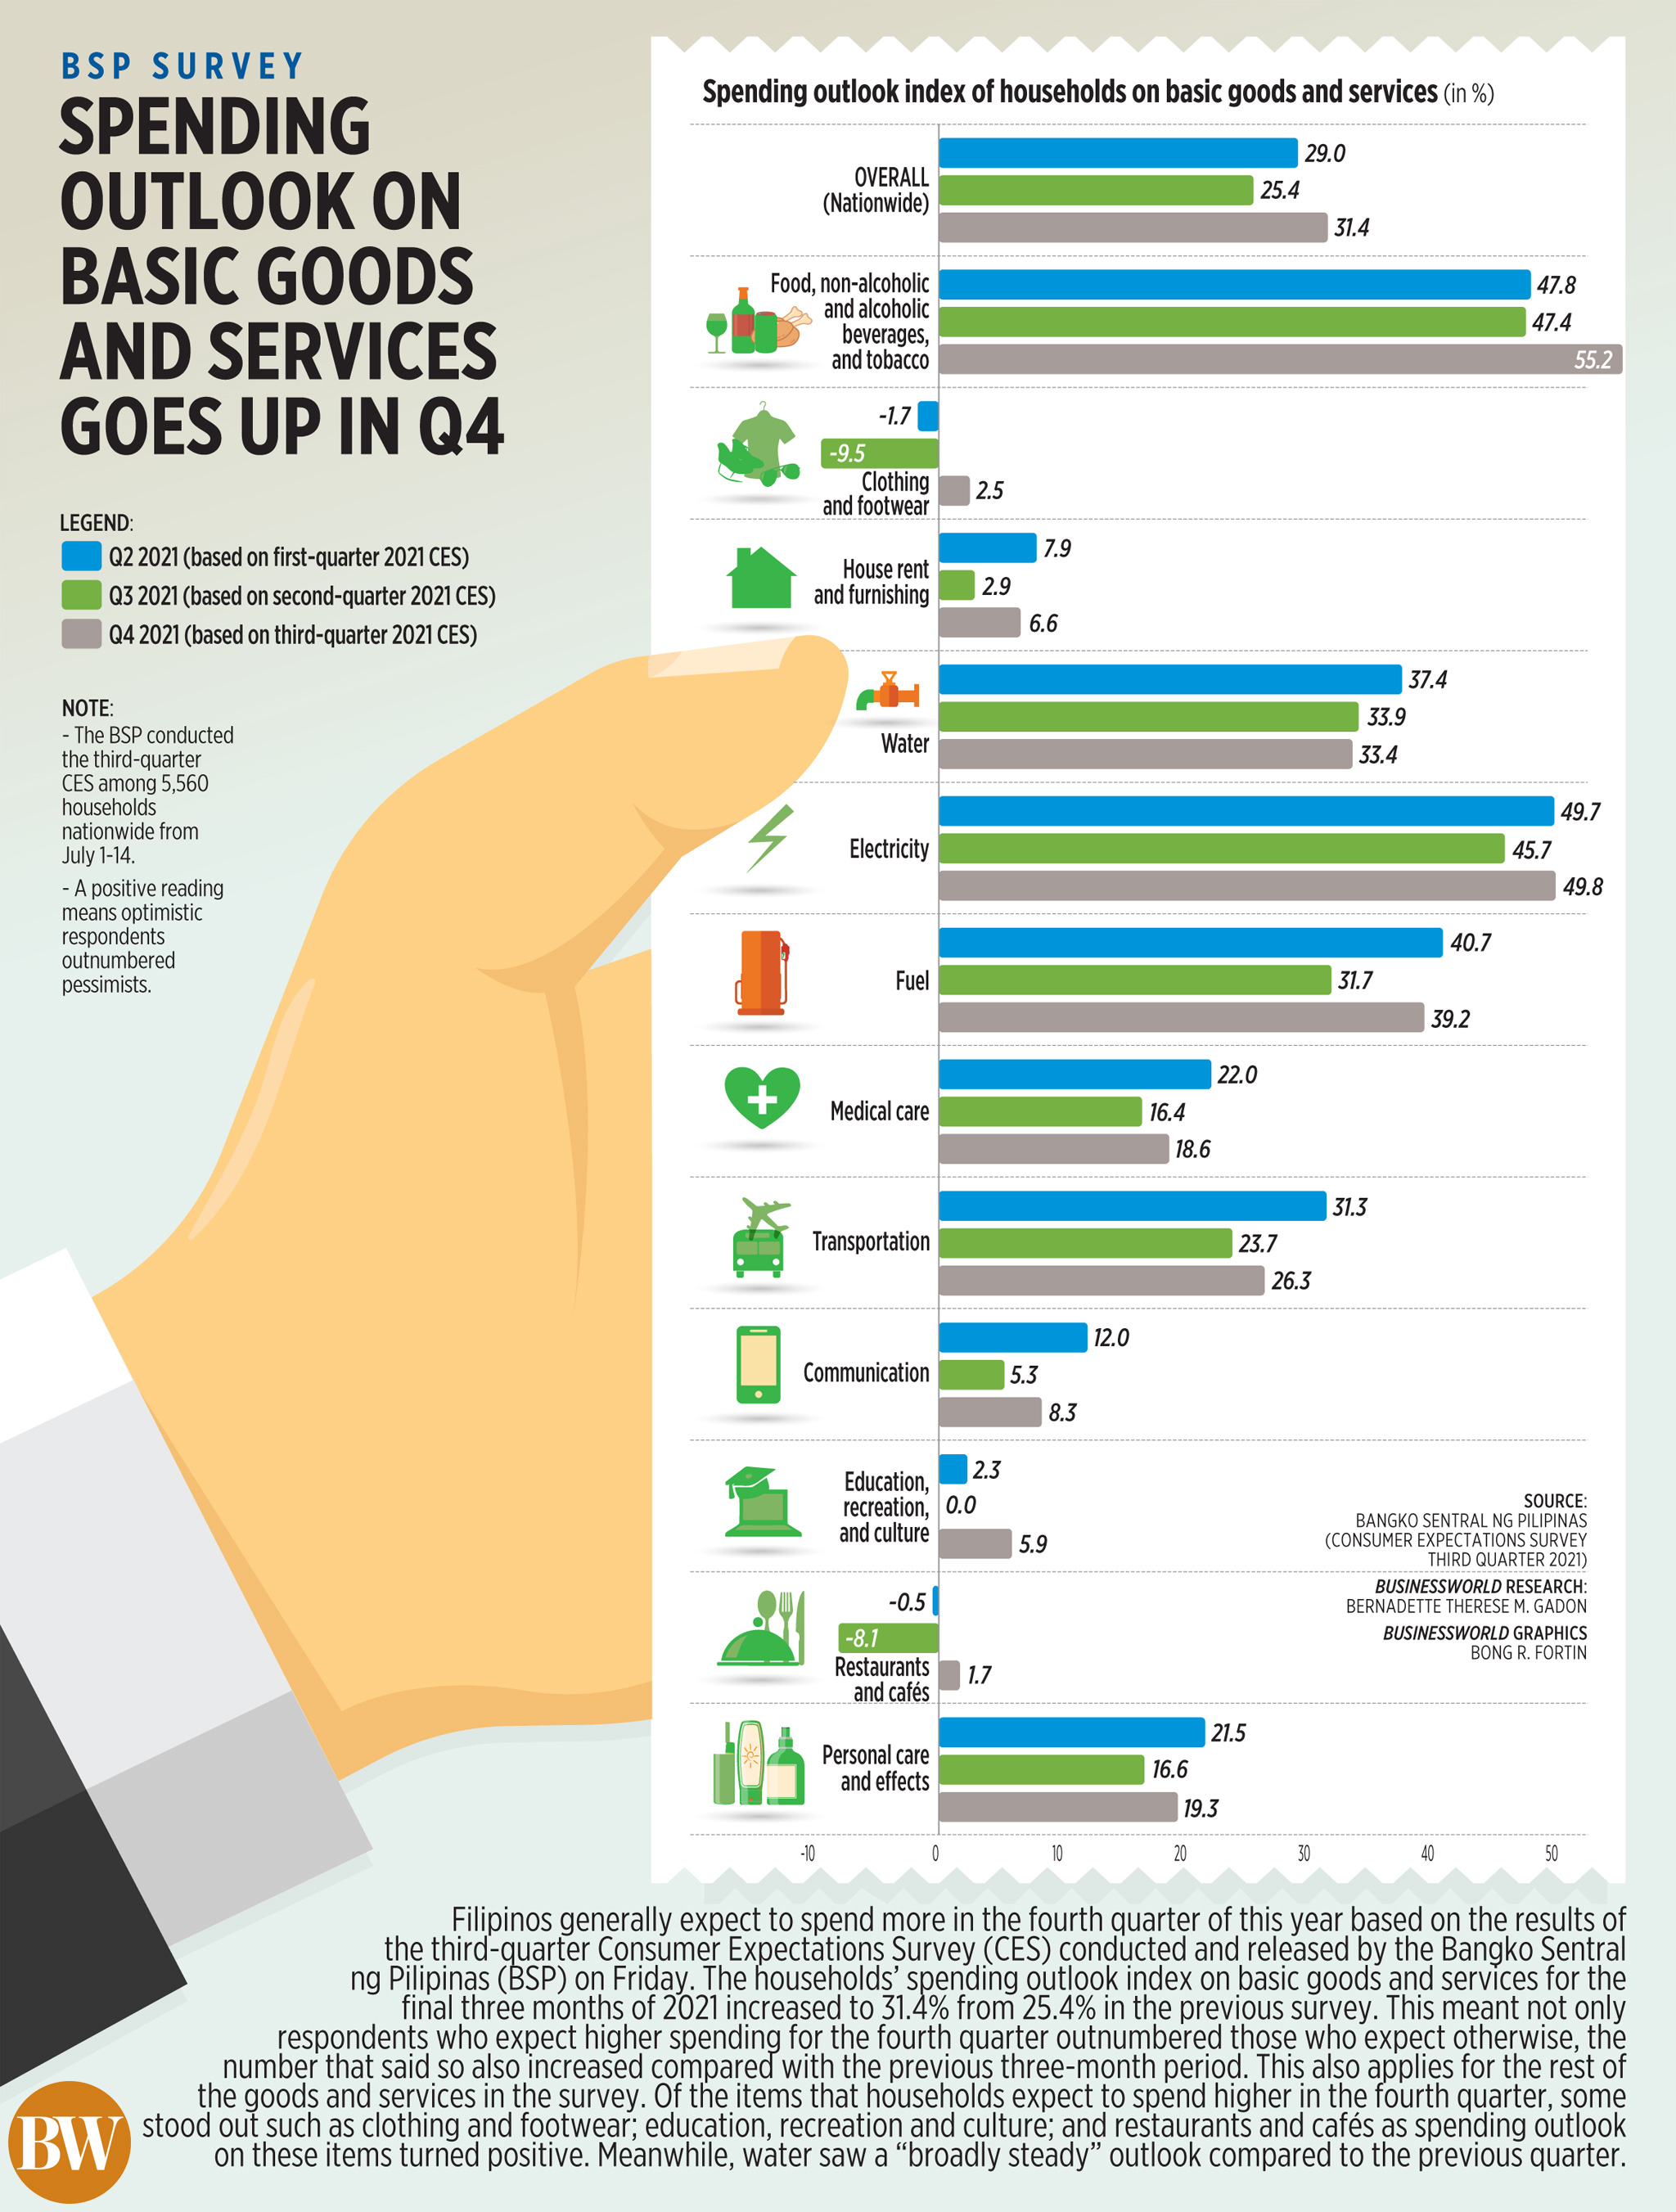 Spending outlook on basic goods and services goes up in Q4